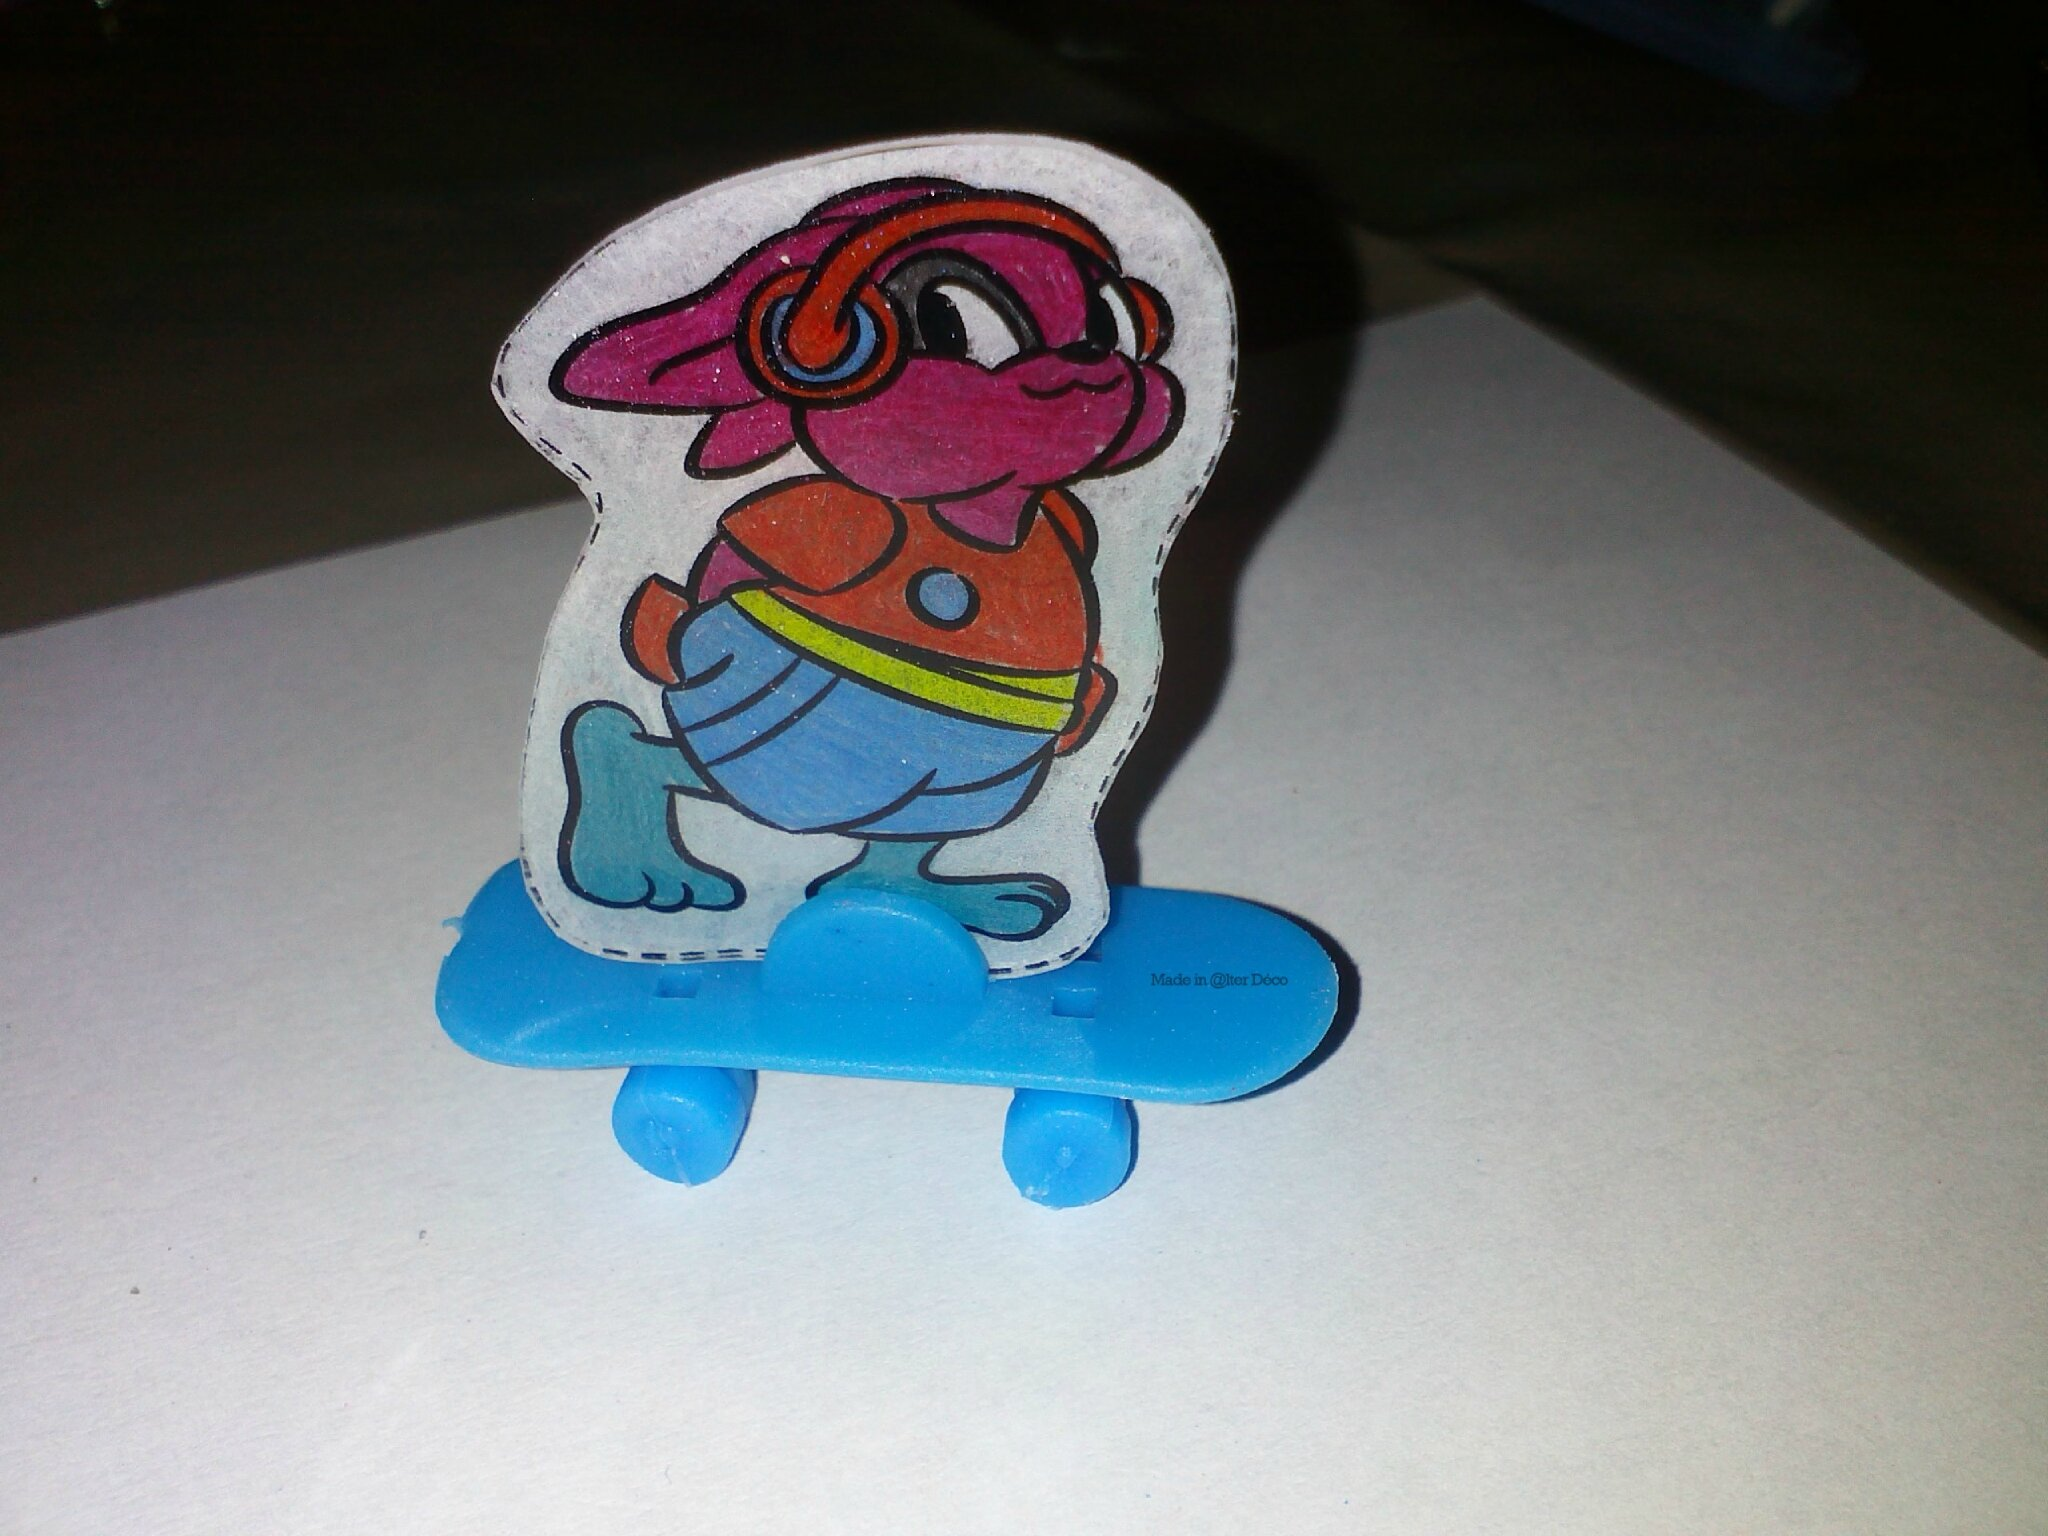 Lapin skateboard en plastique dingue